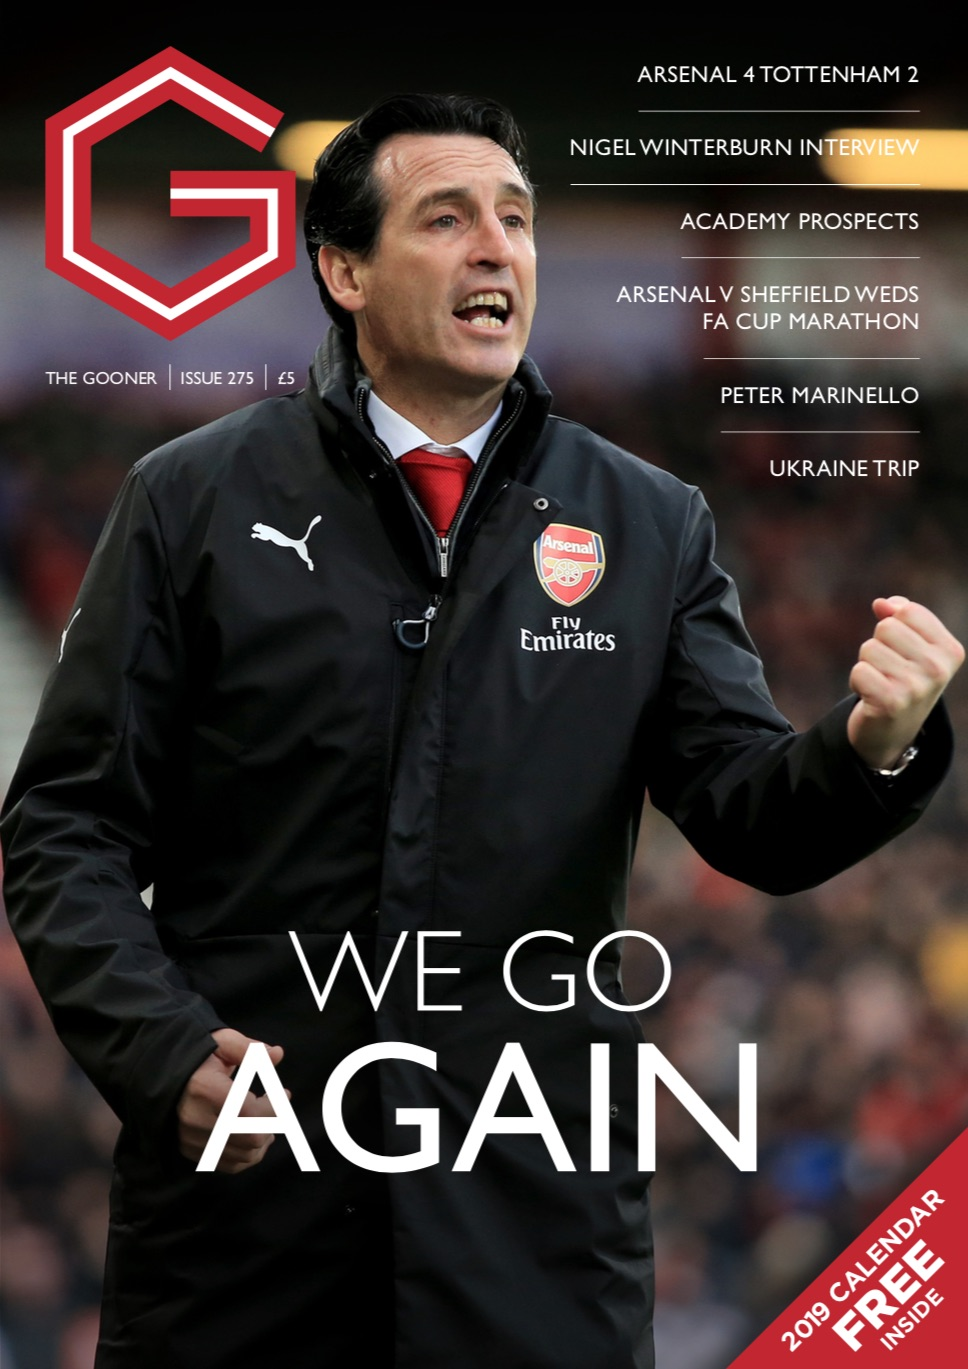 Current Edition – The Gooner Issue 275 (UK addresses)